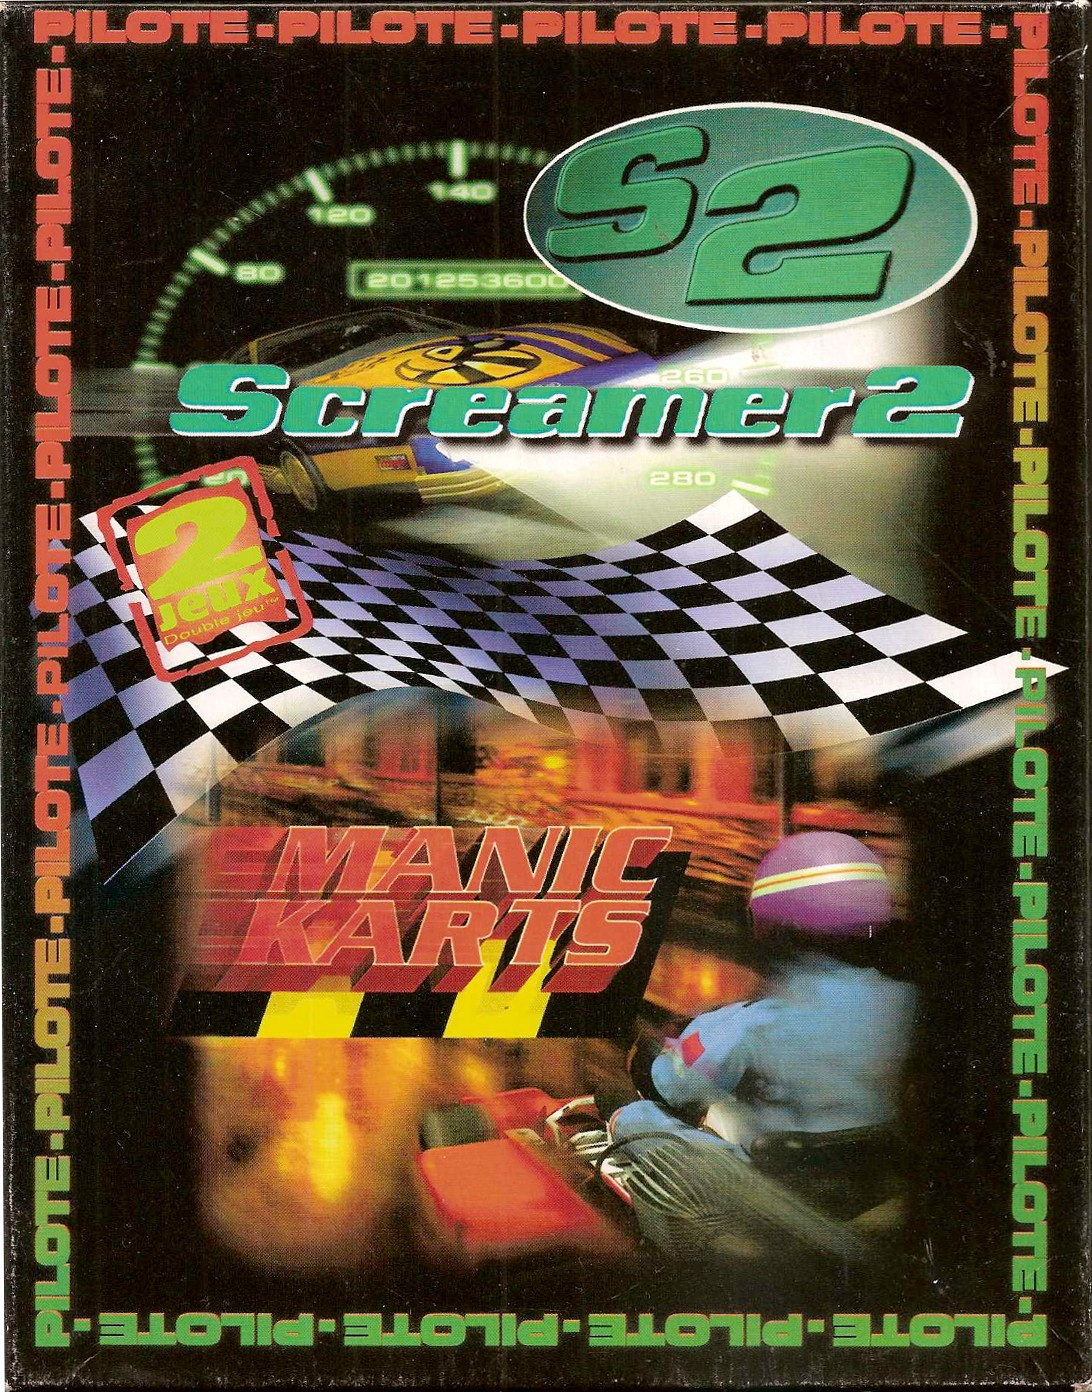 image : /images_abandonware/compilations/105DoublePiloteFrontCover.jpg